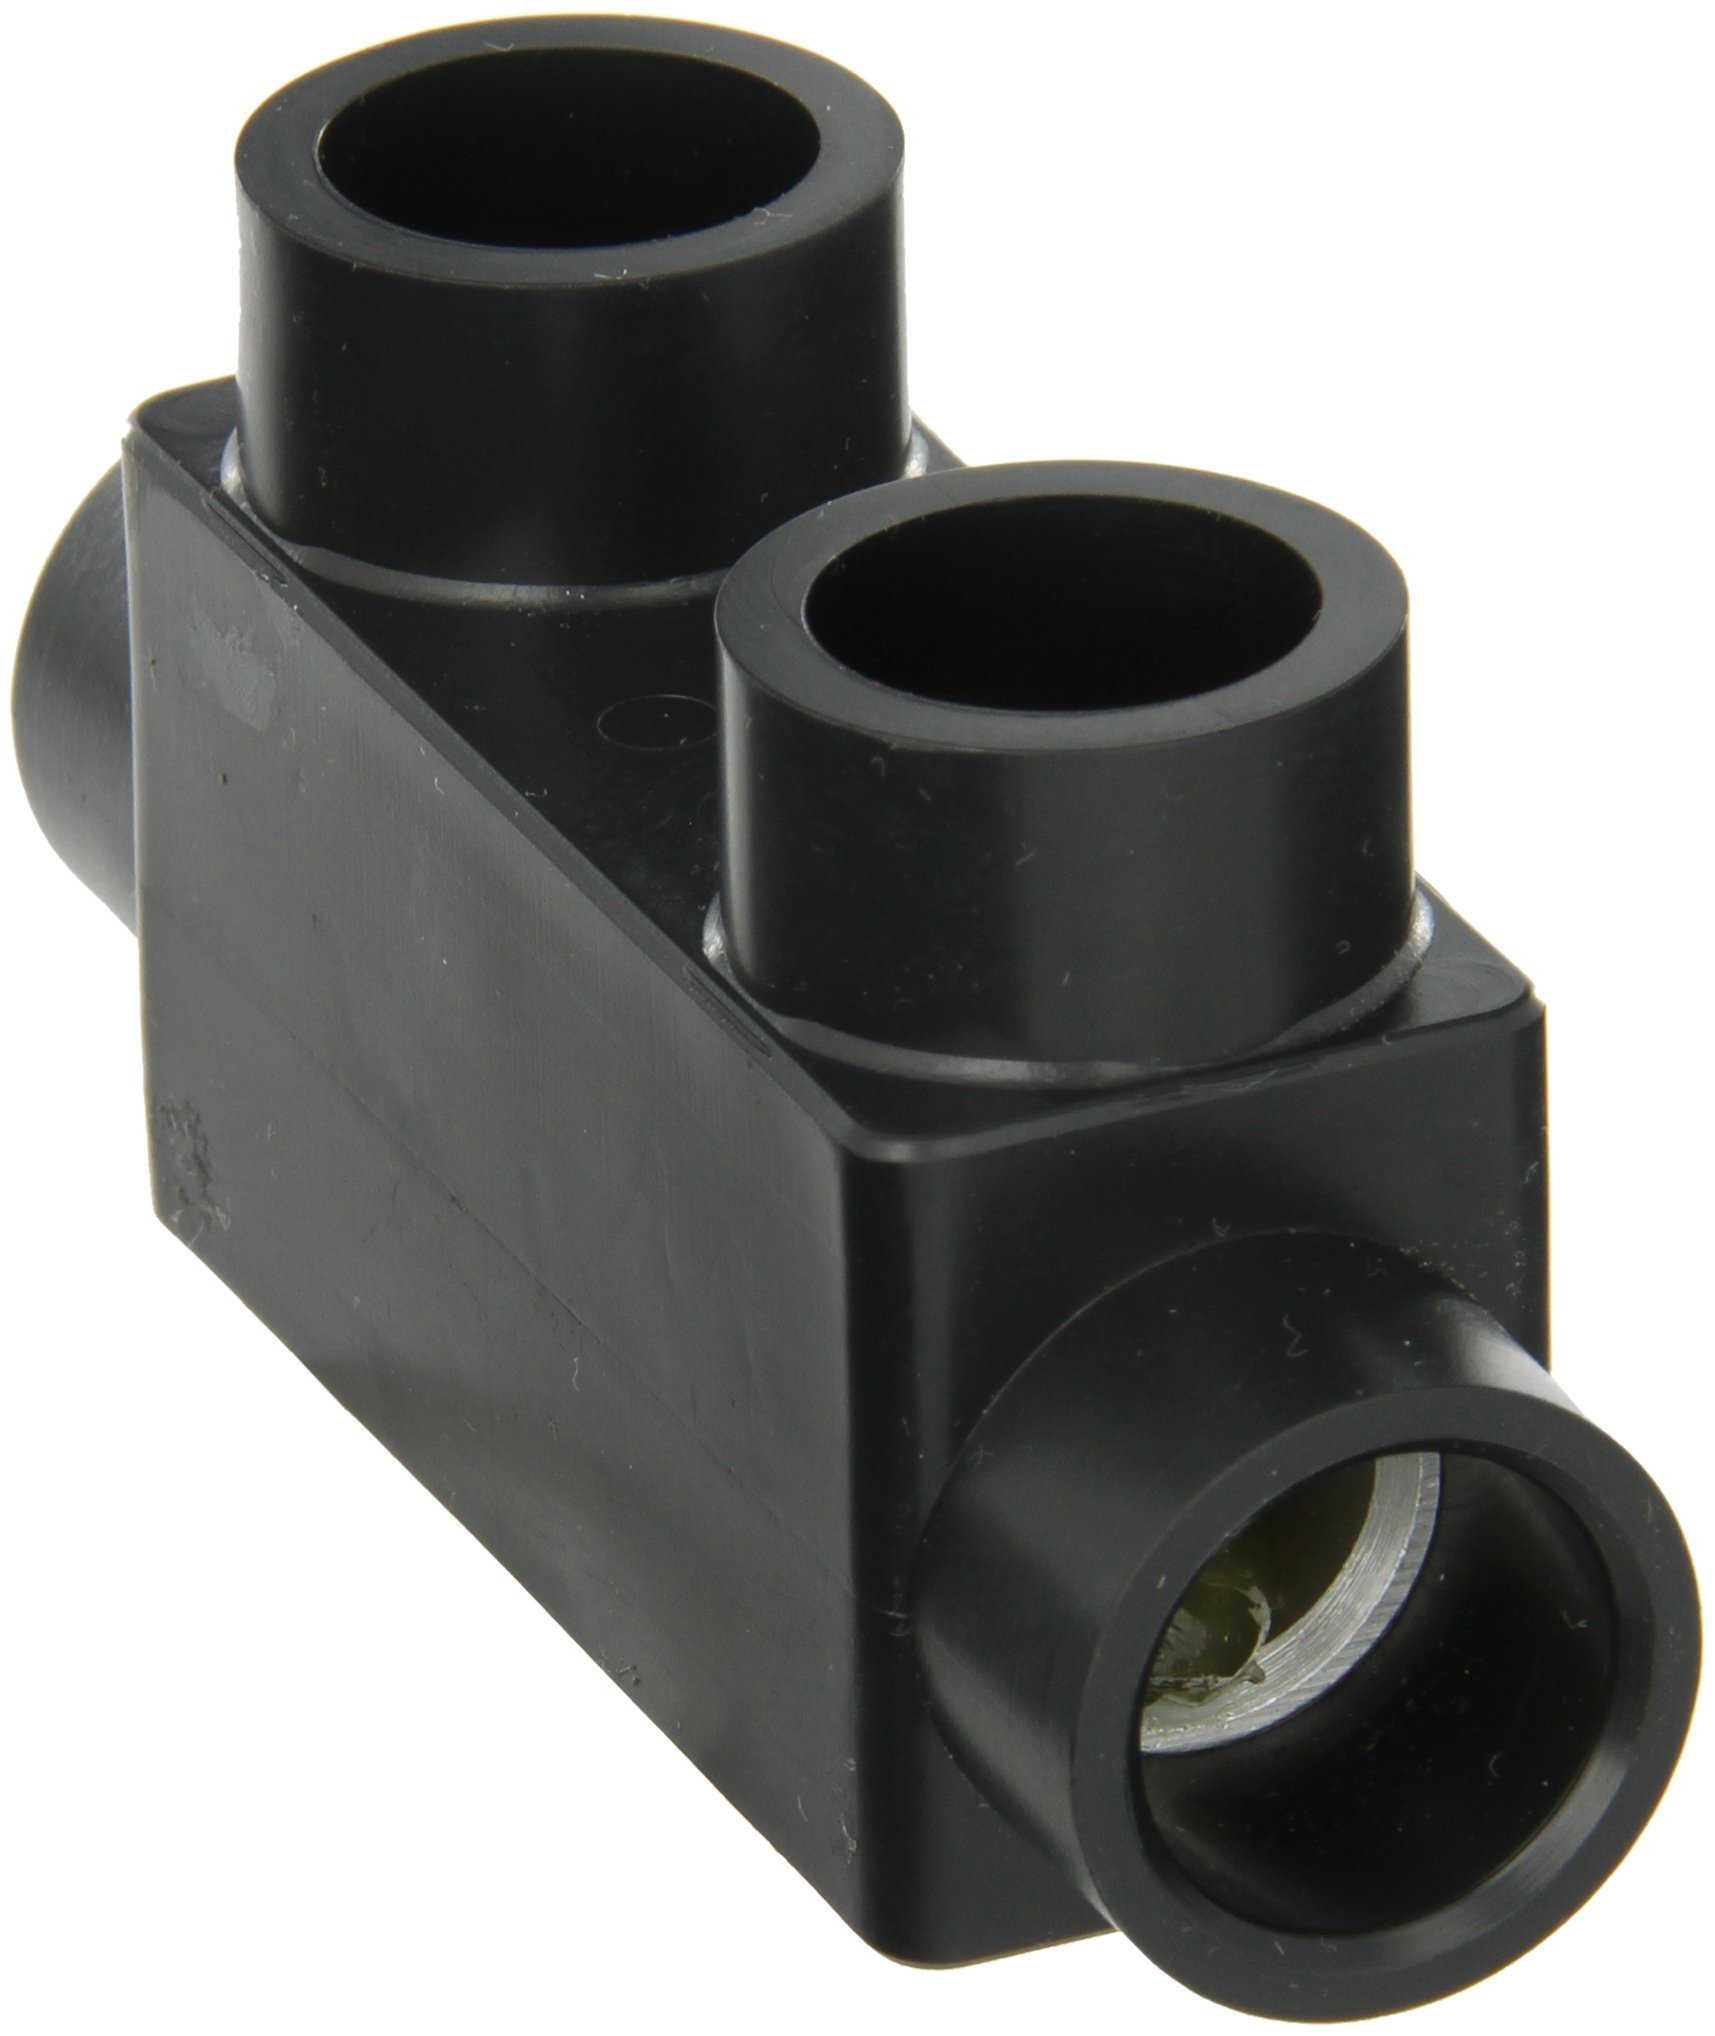 Morris Products 97021 Insulated In-Line Splice, Black, 250 - 6 Wire Range, 5/16'' Allen Hex, 4.00'' Length, 1.13'' Width, 2.25'' Height